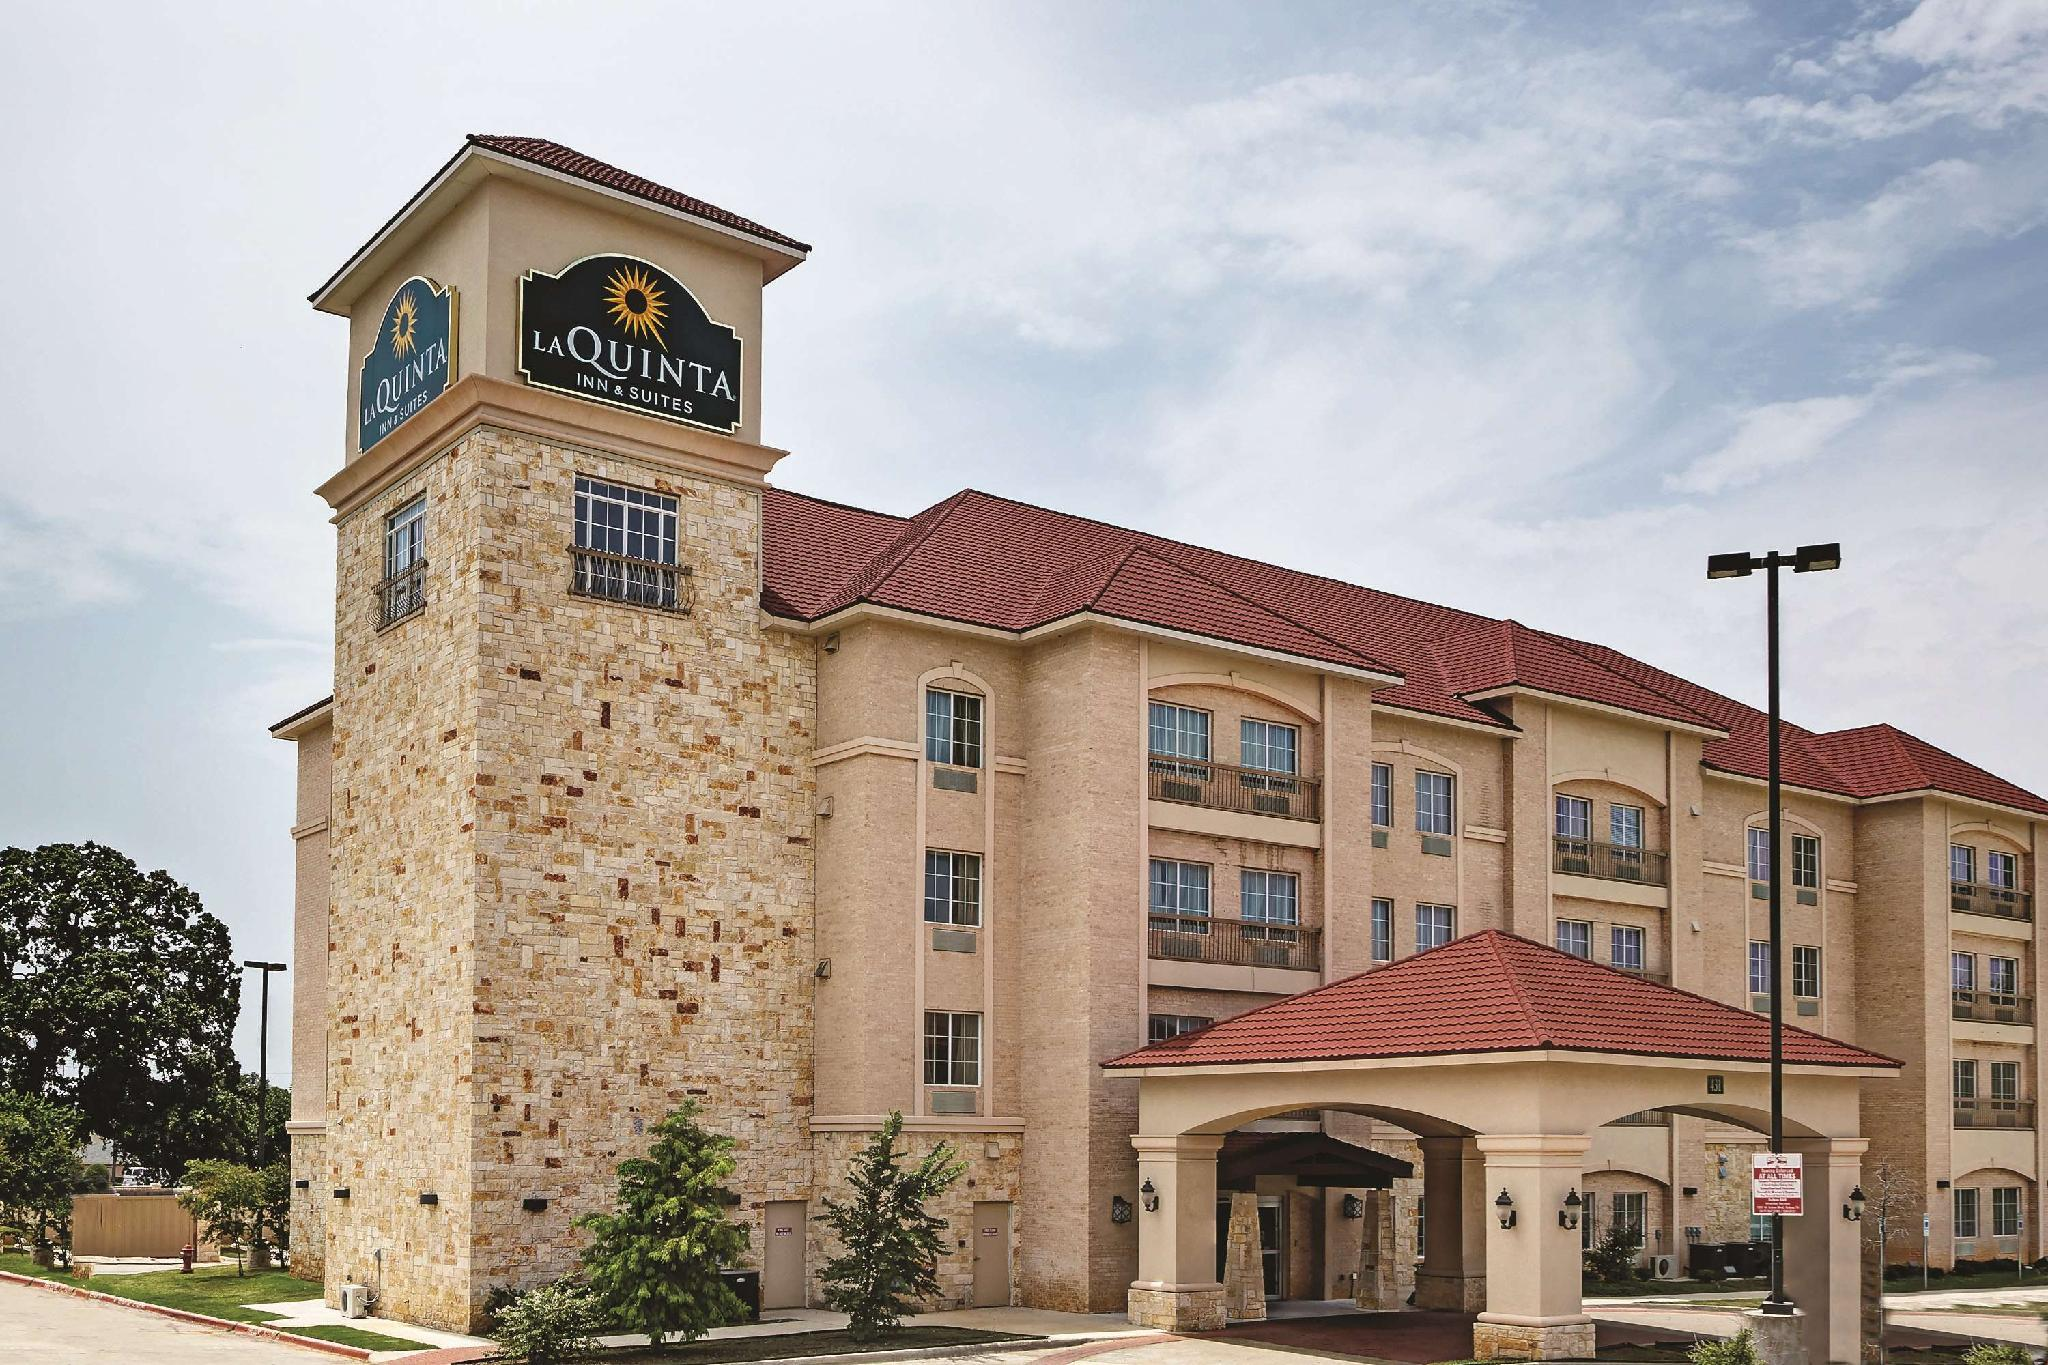 La Quinta Inn And Suites By Wyndham DFW Airport West   Euless